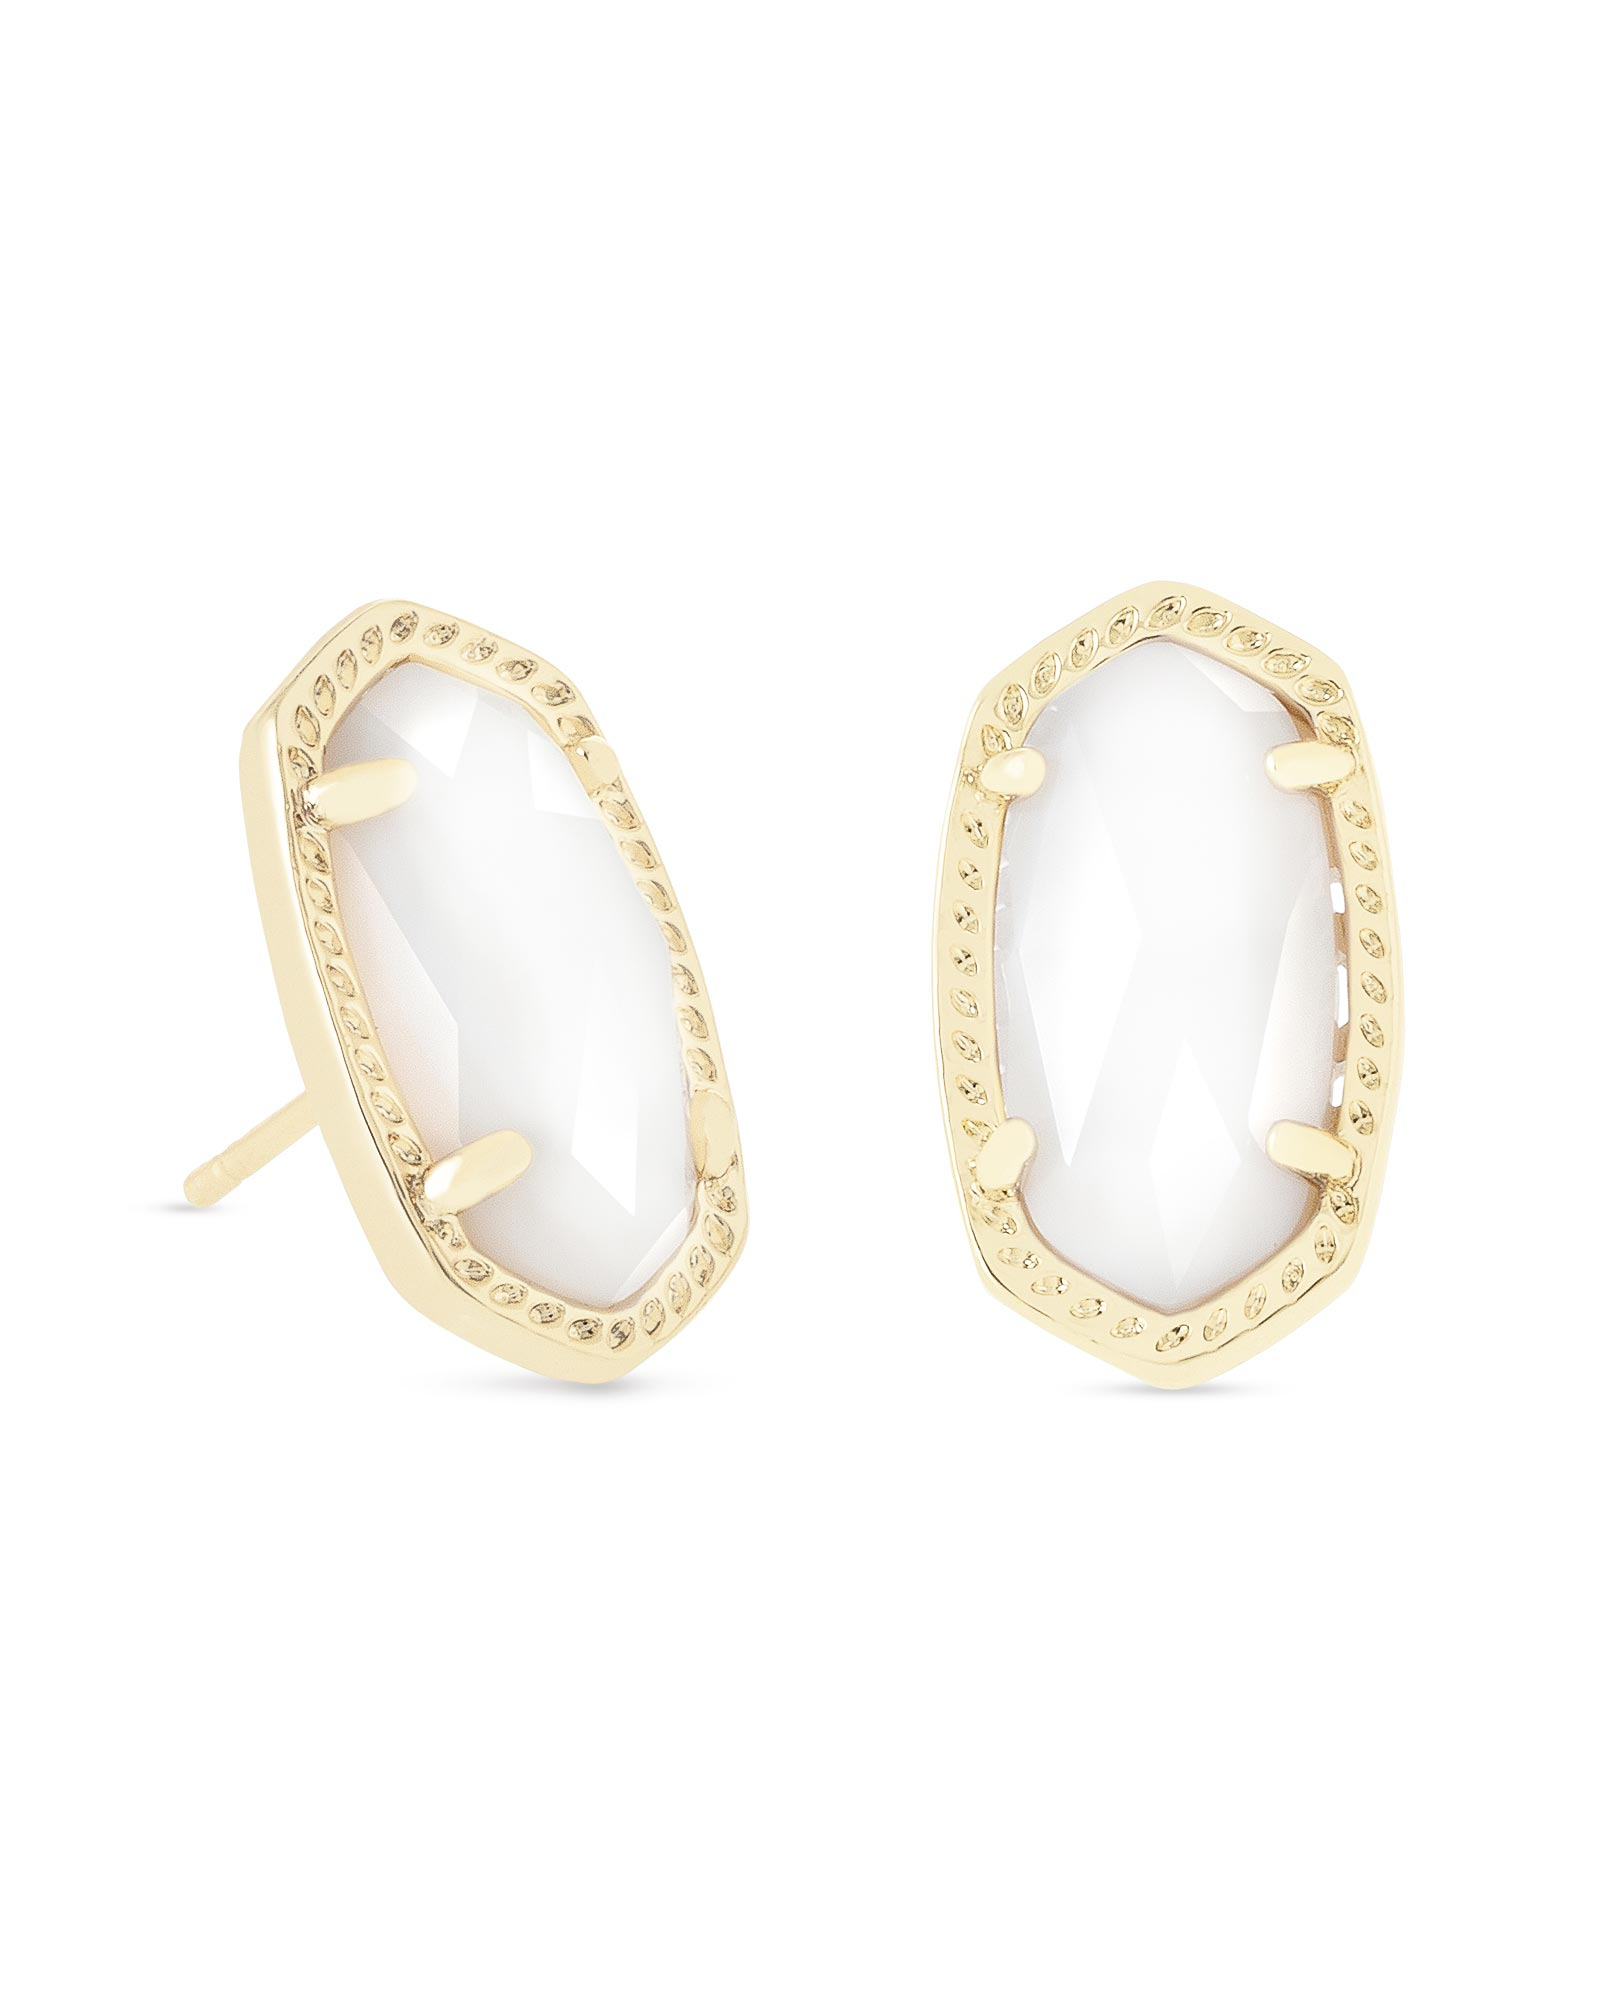 Ellie Gold Stud Earrings in White Pearl